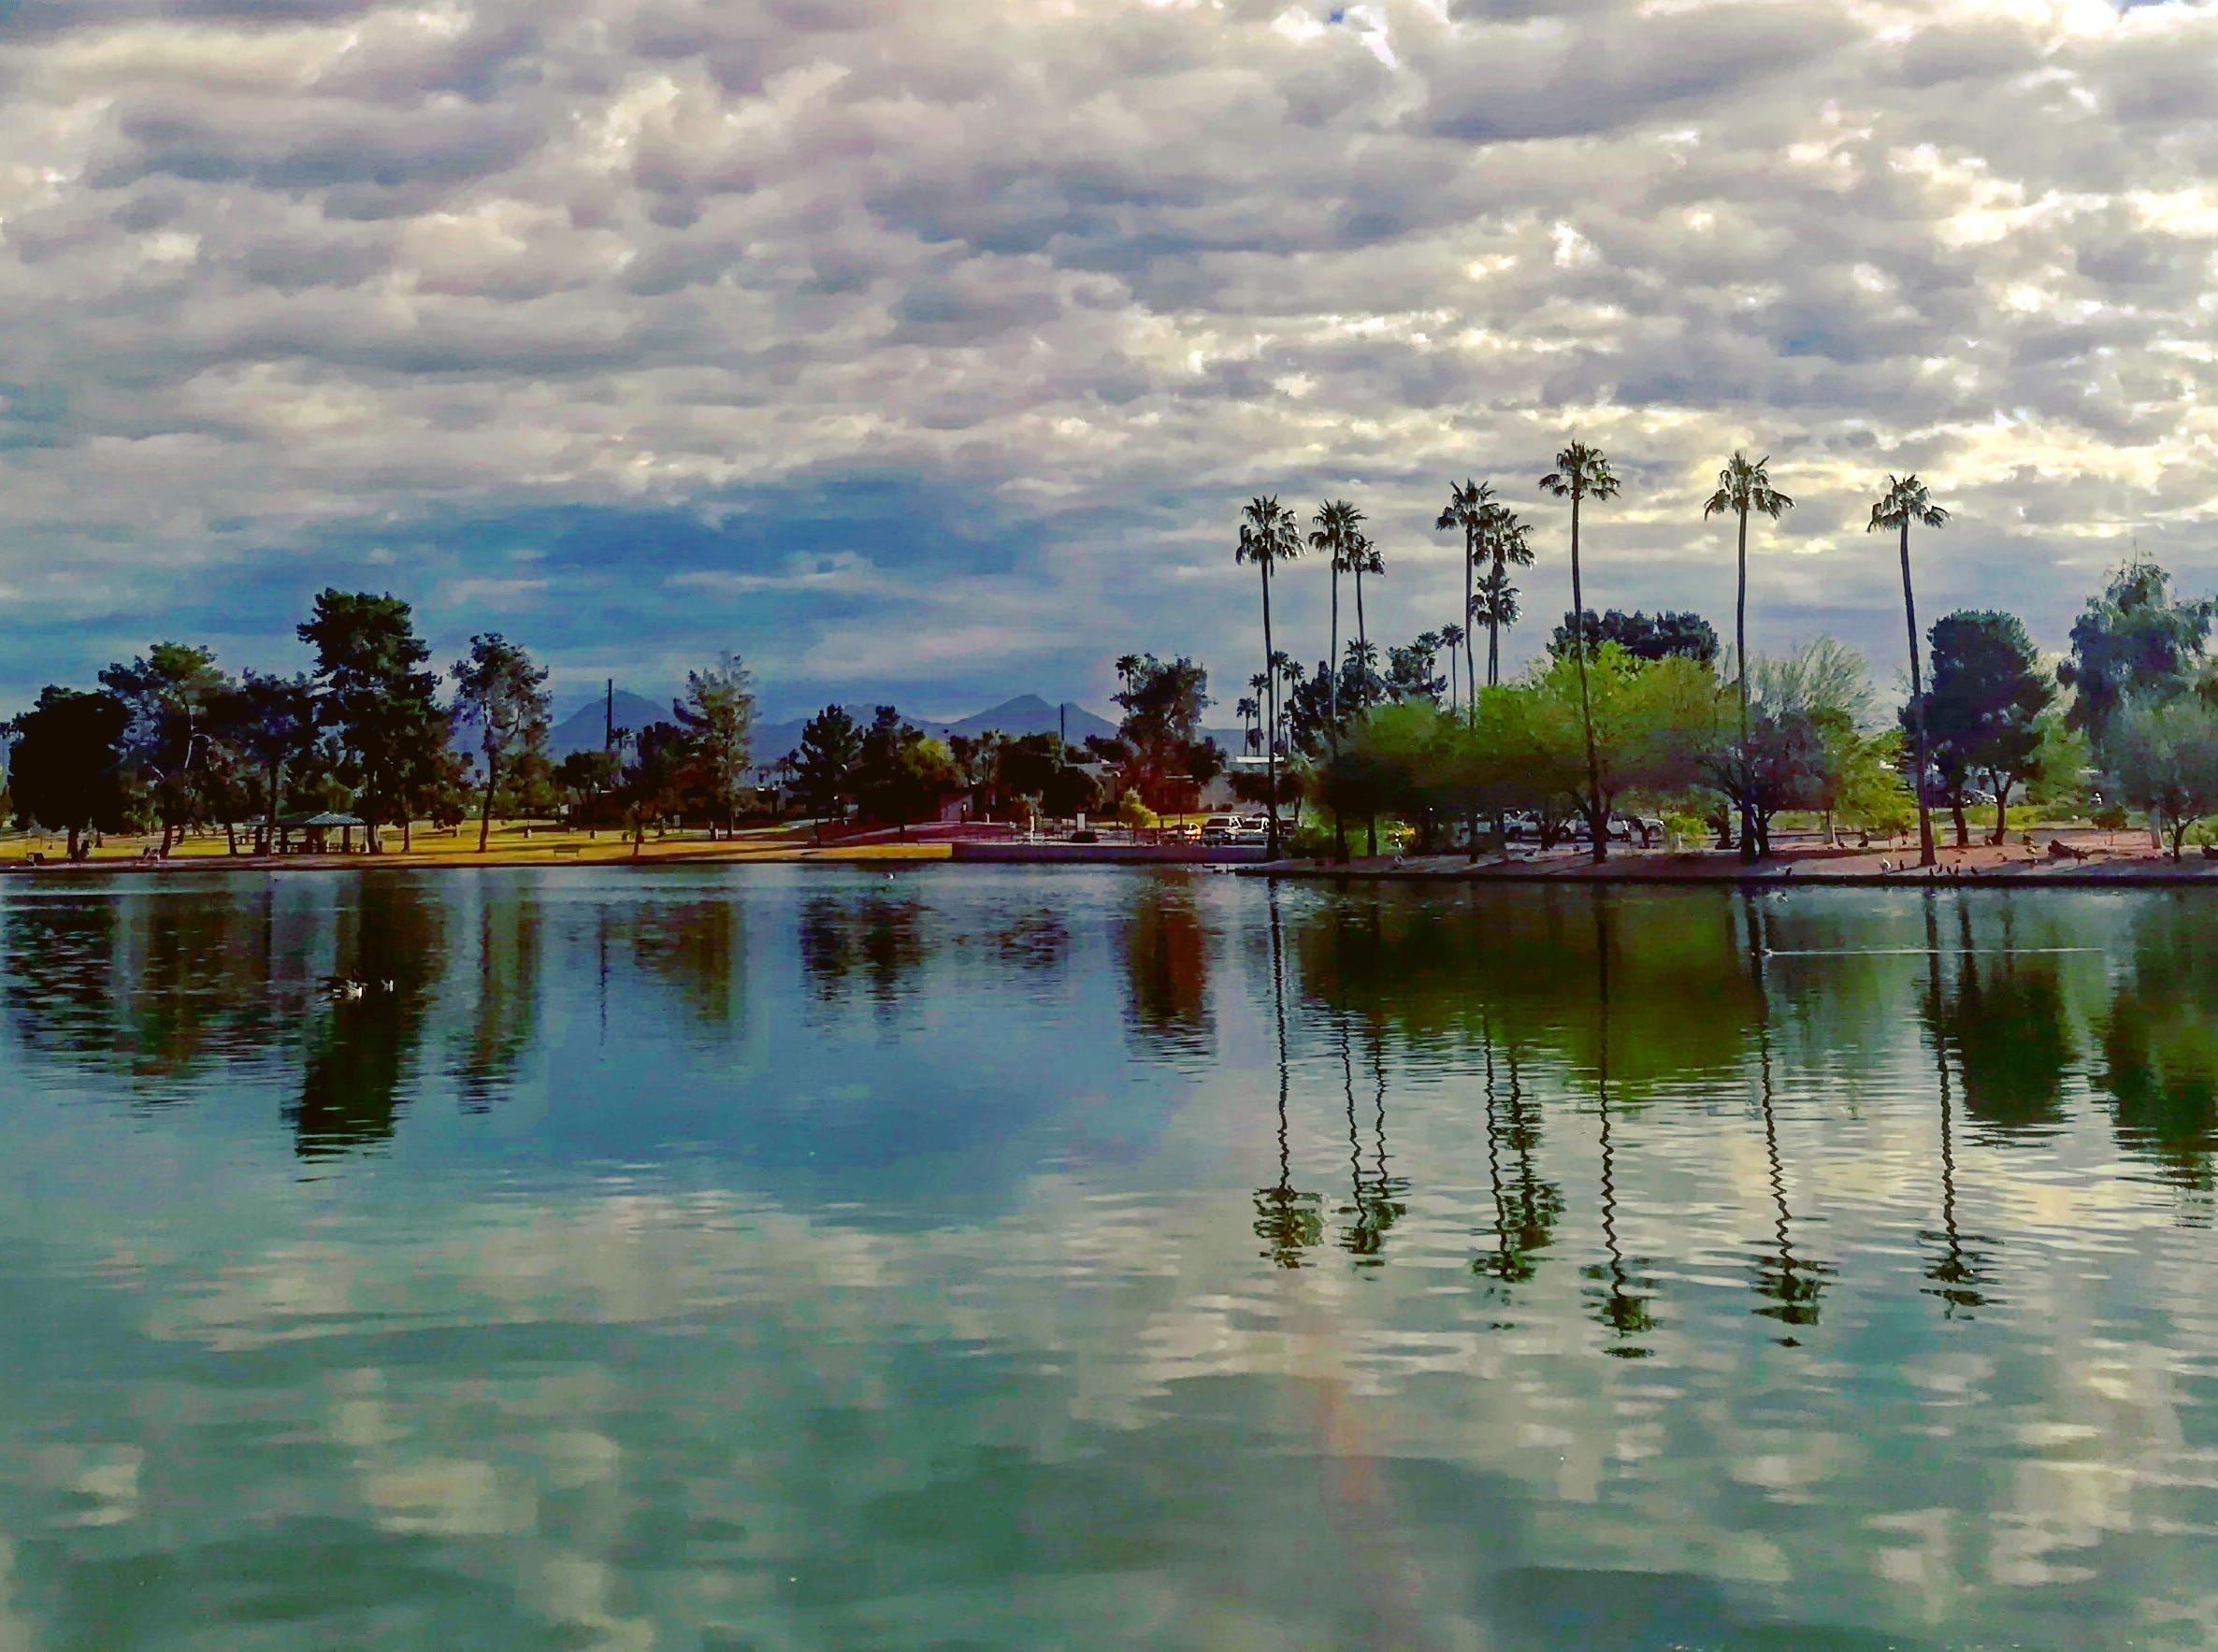 Early morning at Chaparral Lake, Scottsdale.